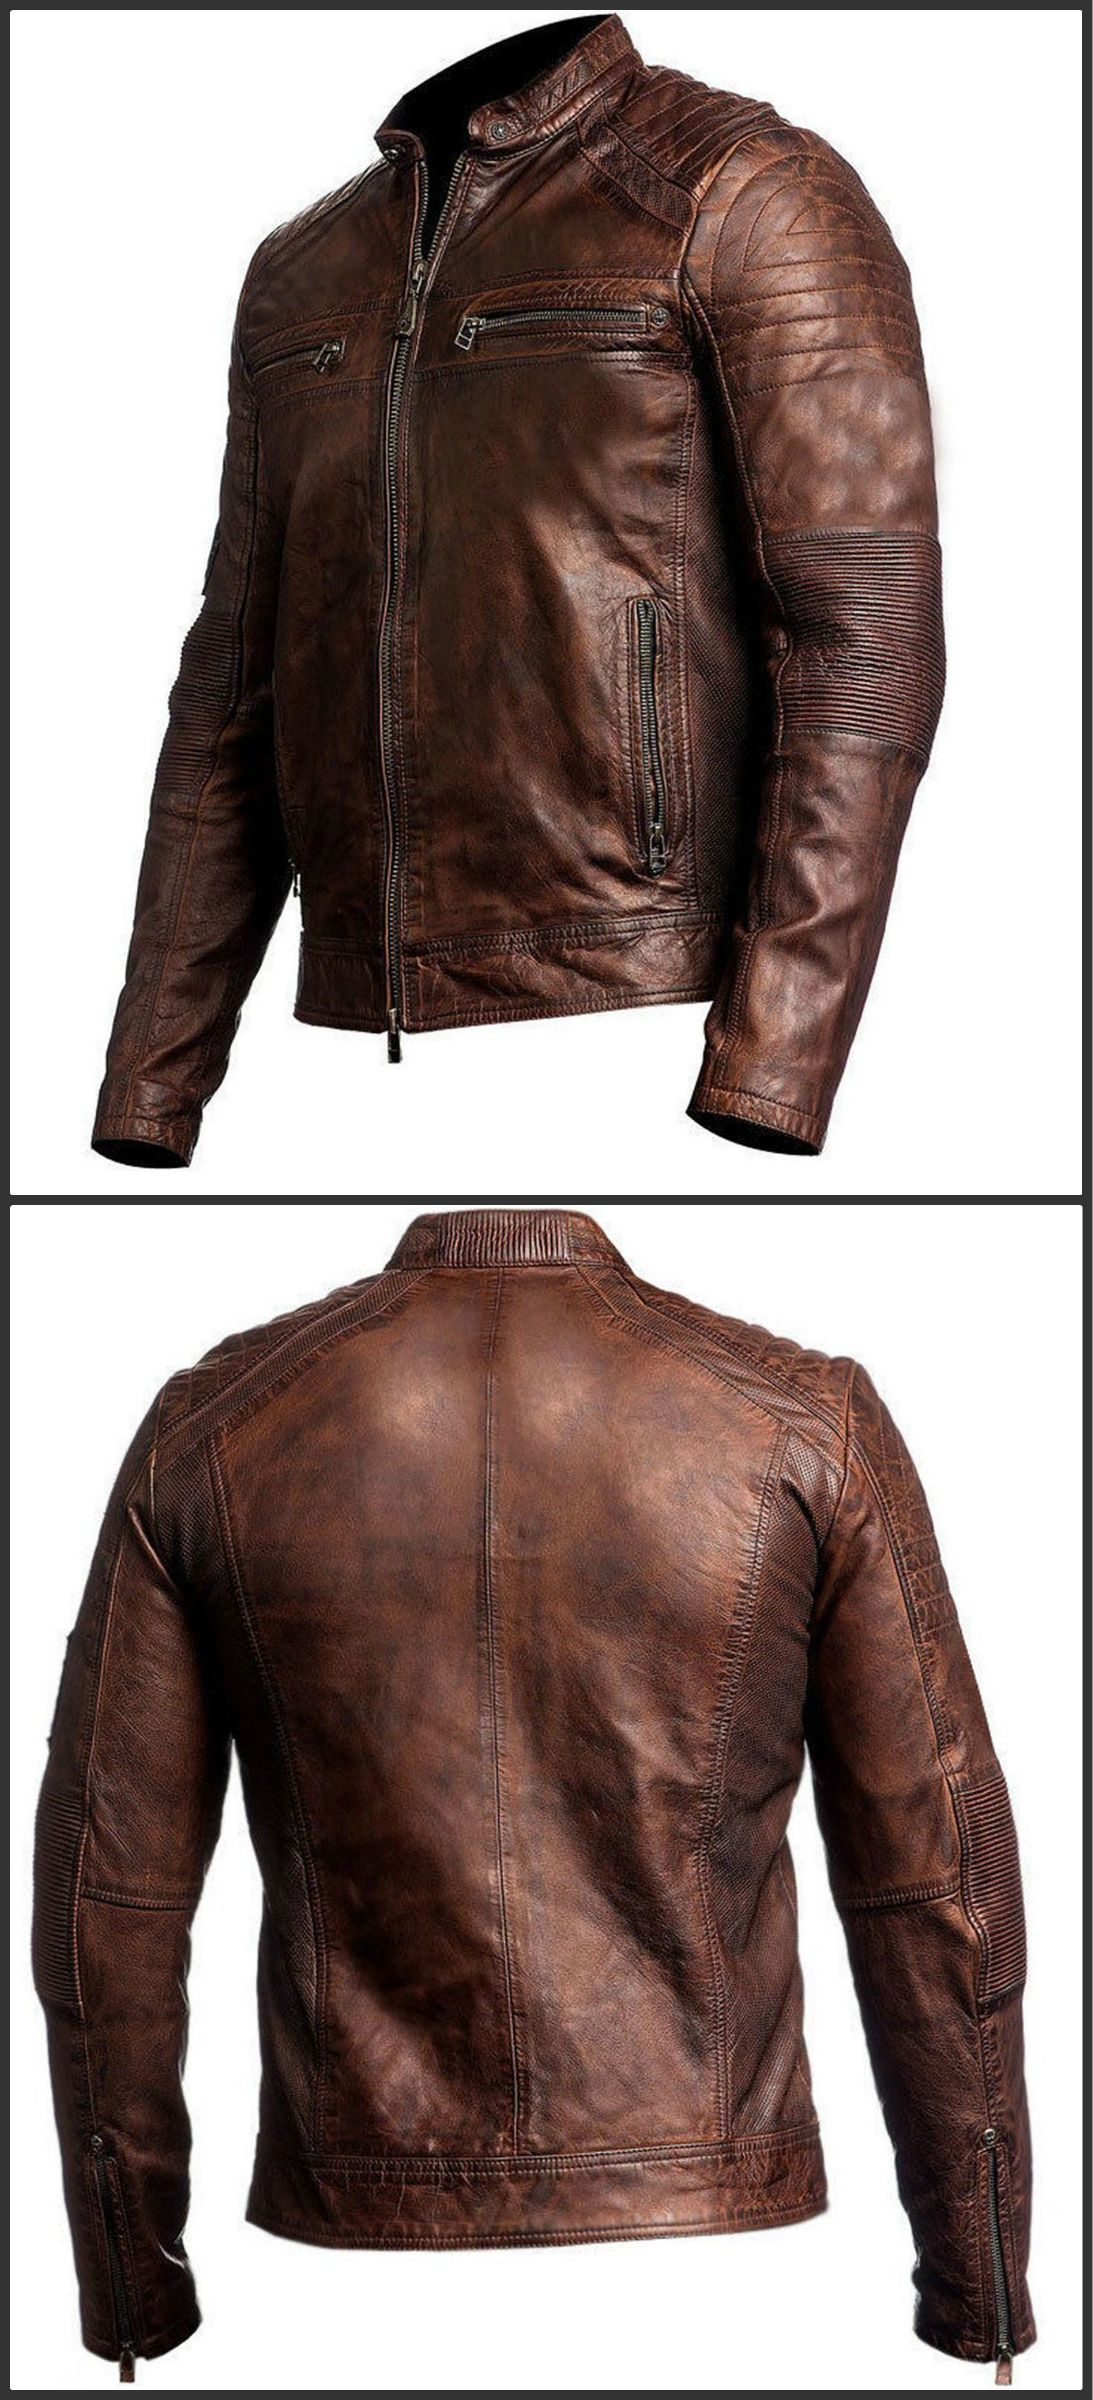 Biker Style Motorcycle Cafe Racer Distressed Leather Jacket for Sale On